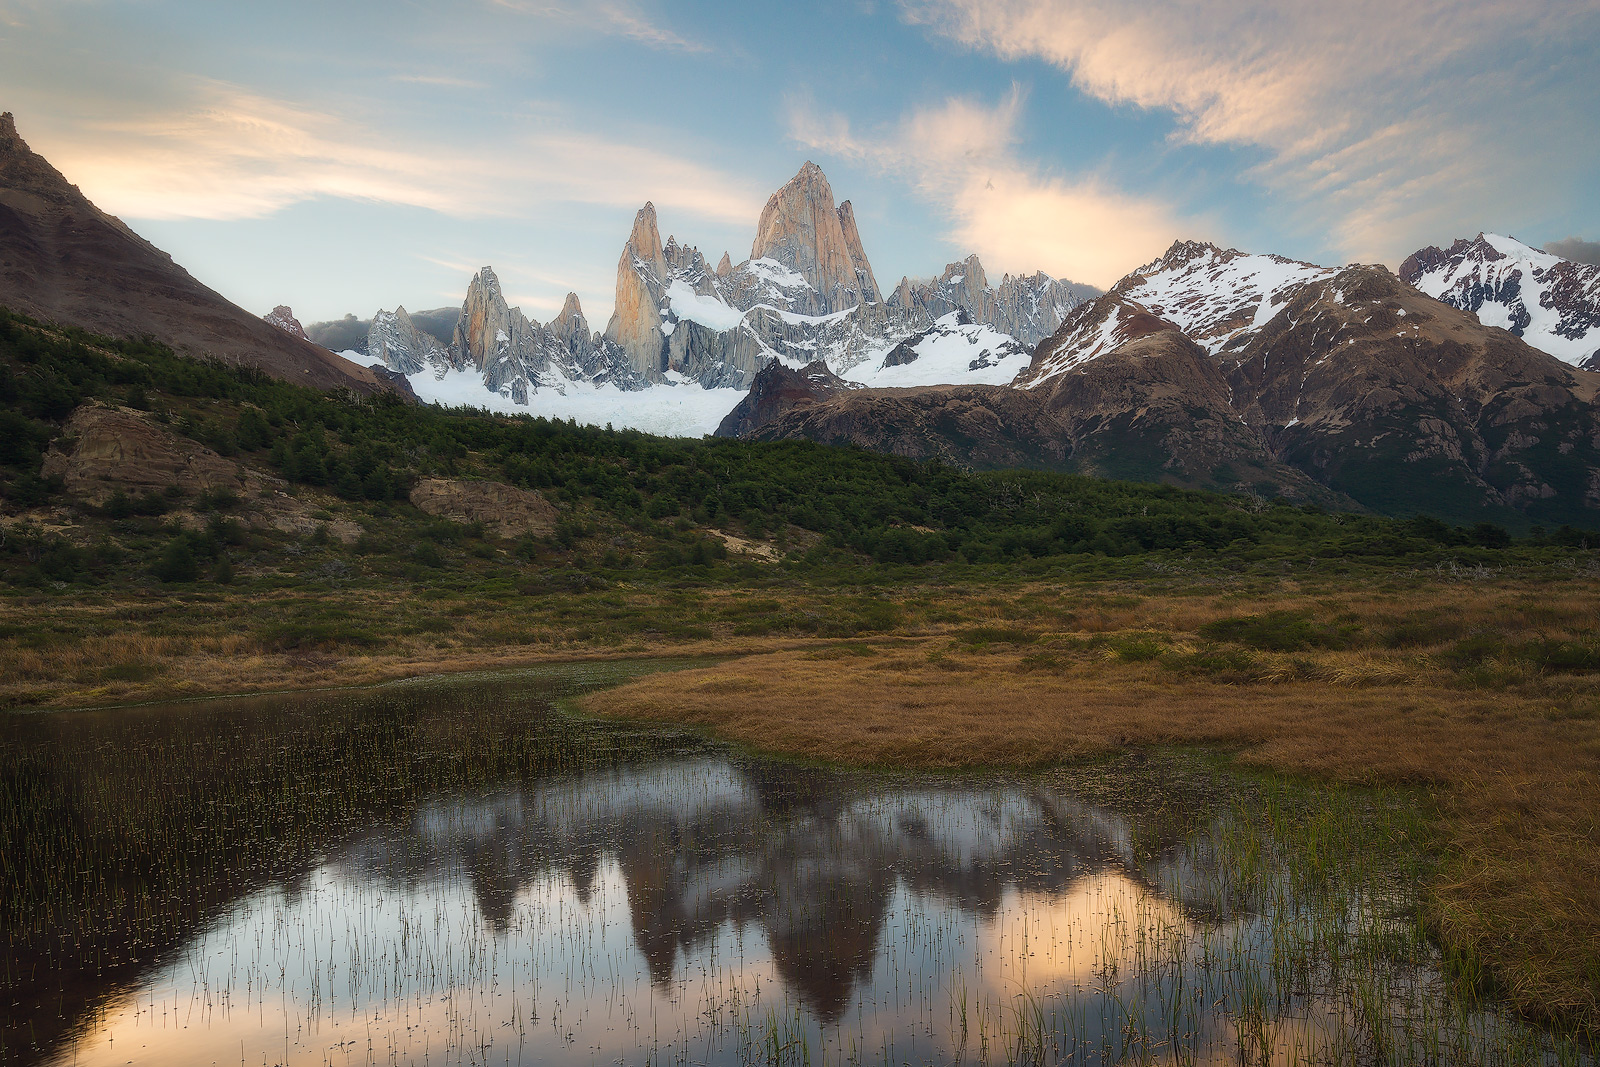 Spring, andes mountains, argentina, beautiful, evening, landscape, los glaciares national park, marsh, mount fitz roy, mountain, mountain range, patagonia, peak, pond, reflection, snow, south america,, photo